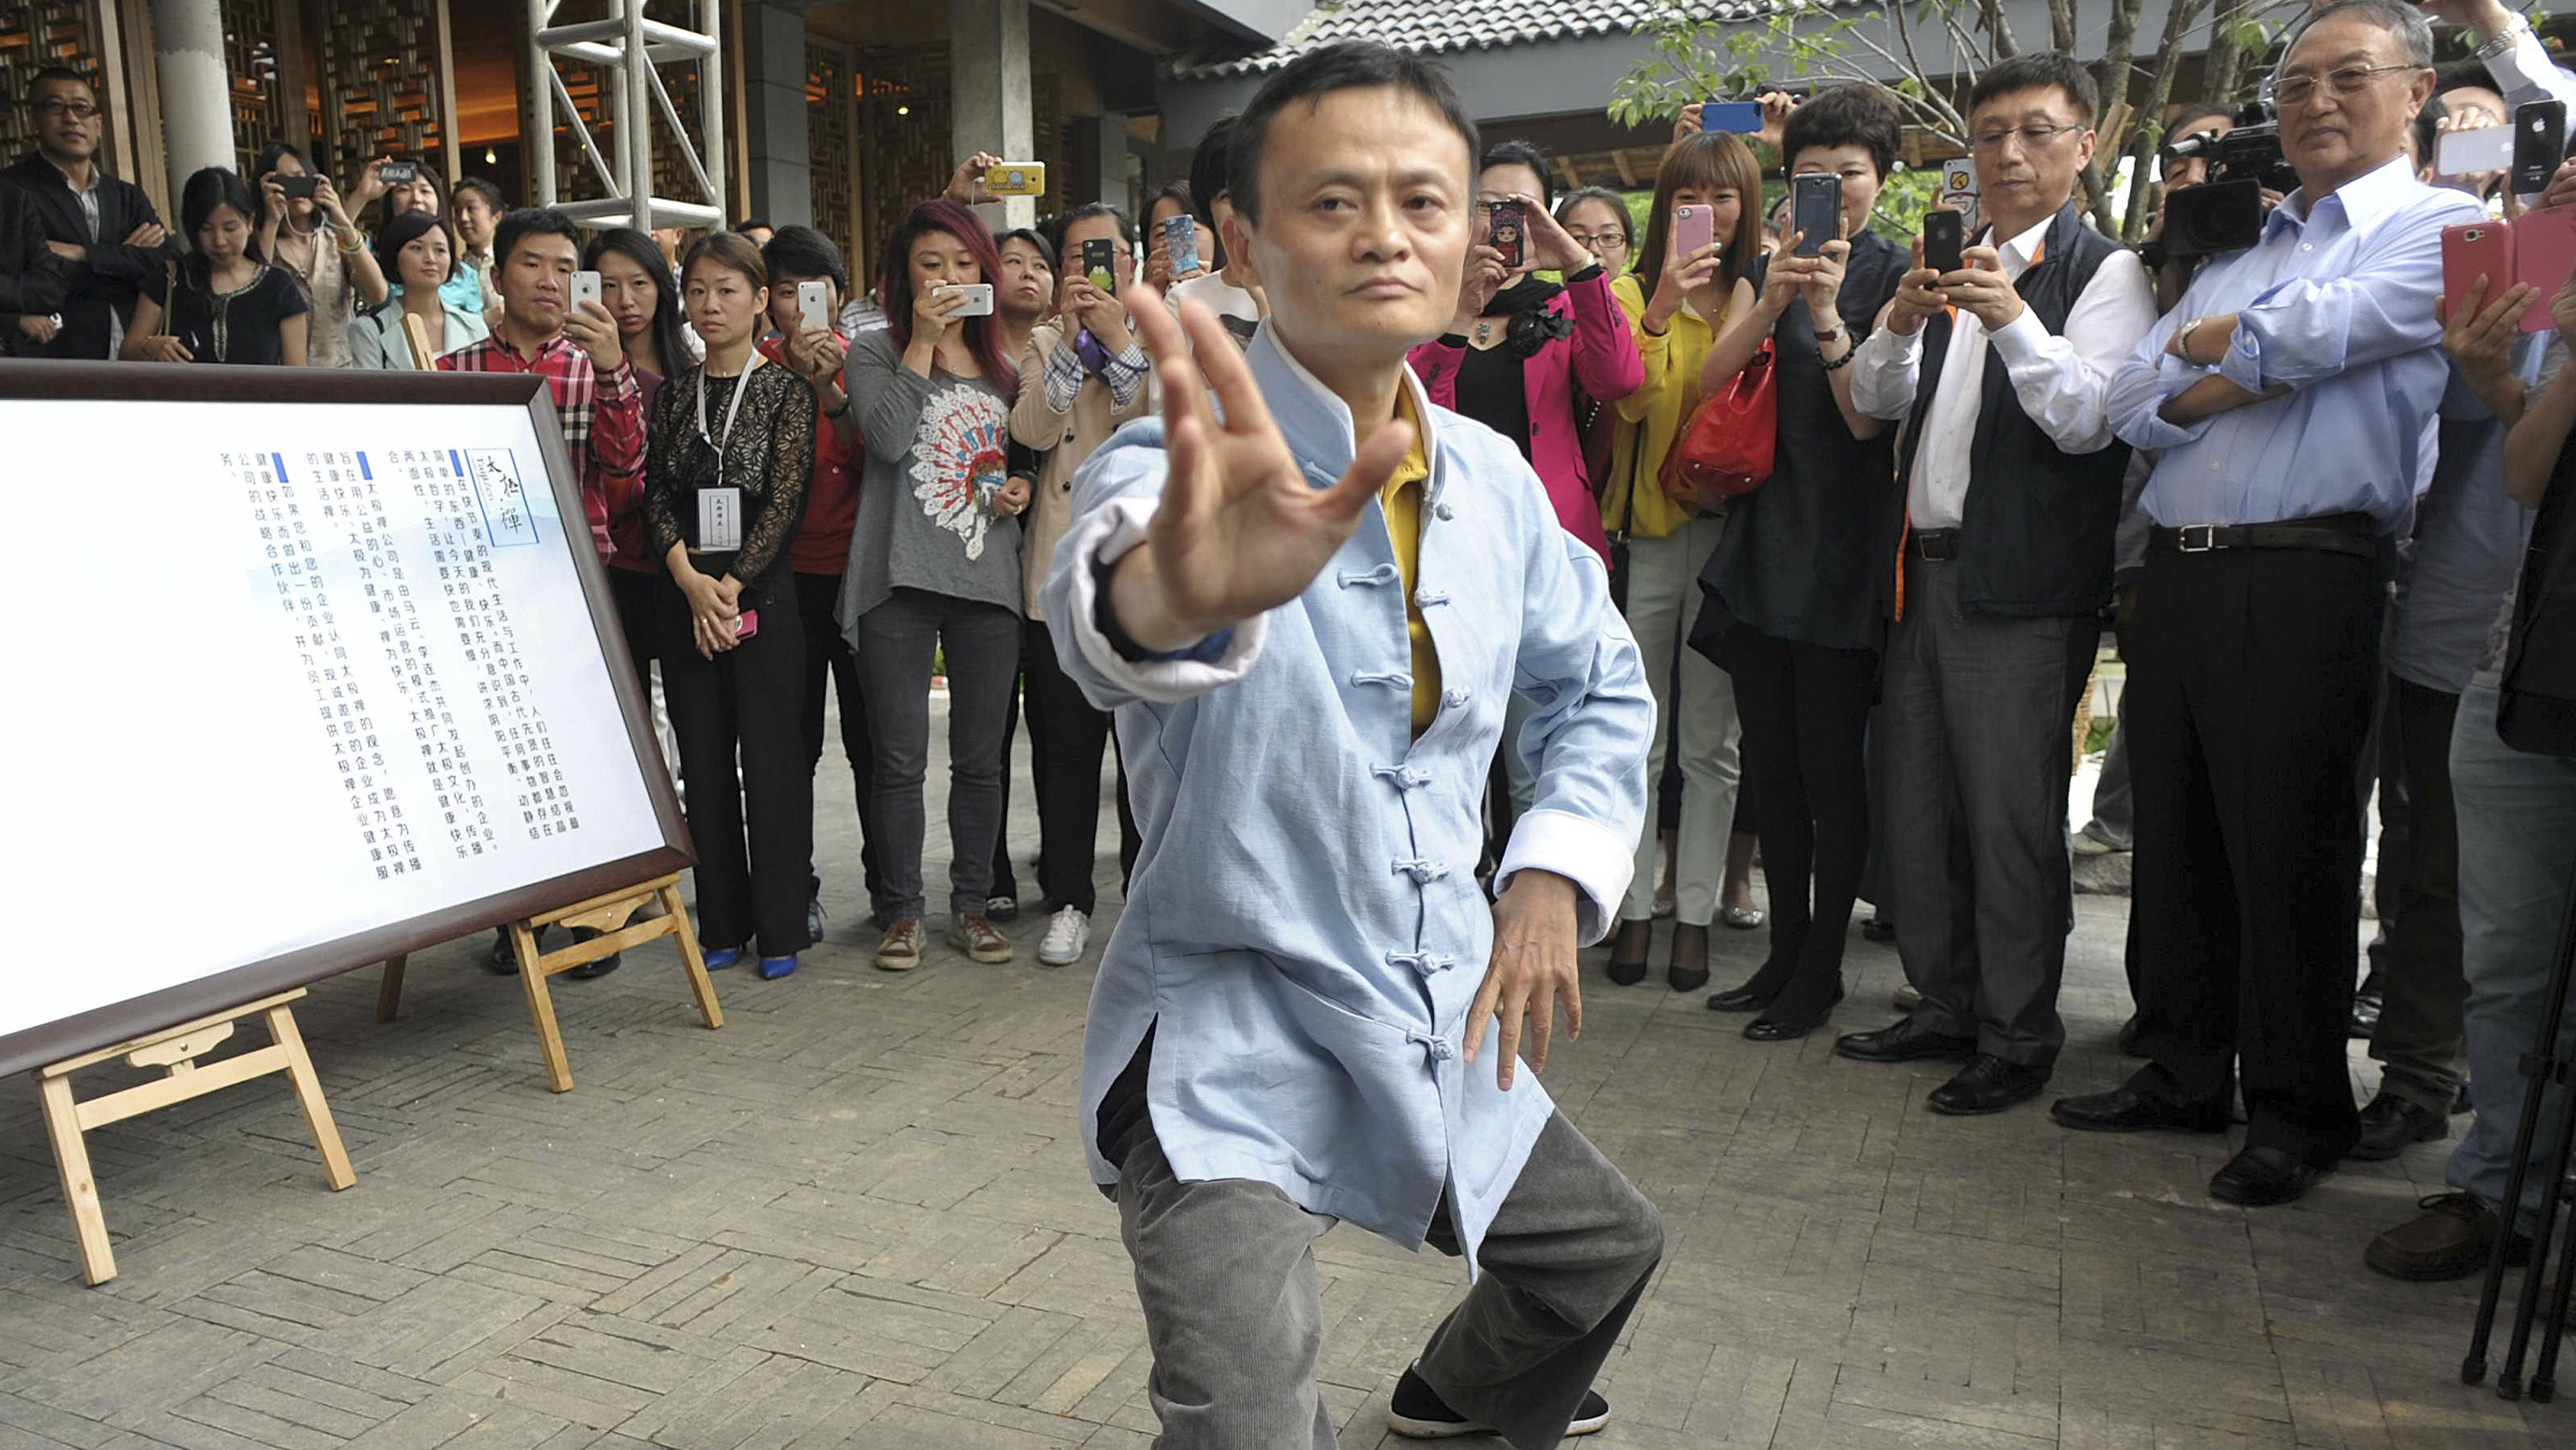 2017 Singles Day: Jack Ma's love of martial arts and Tai Chi